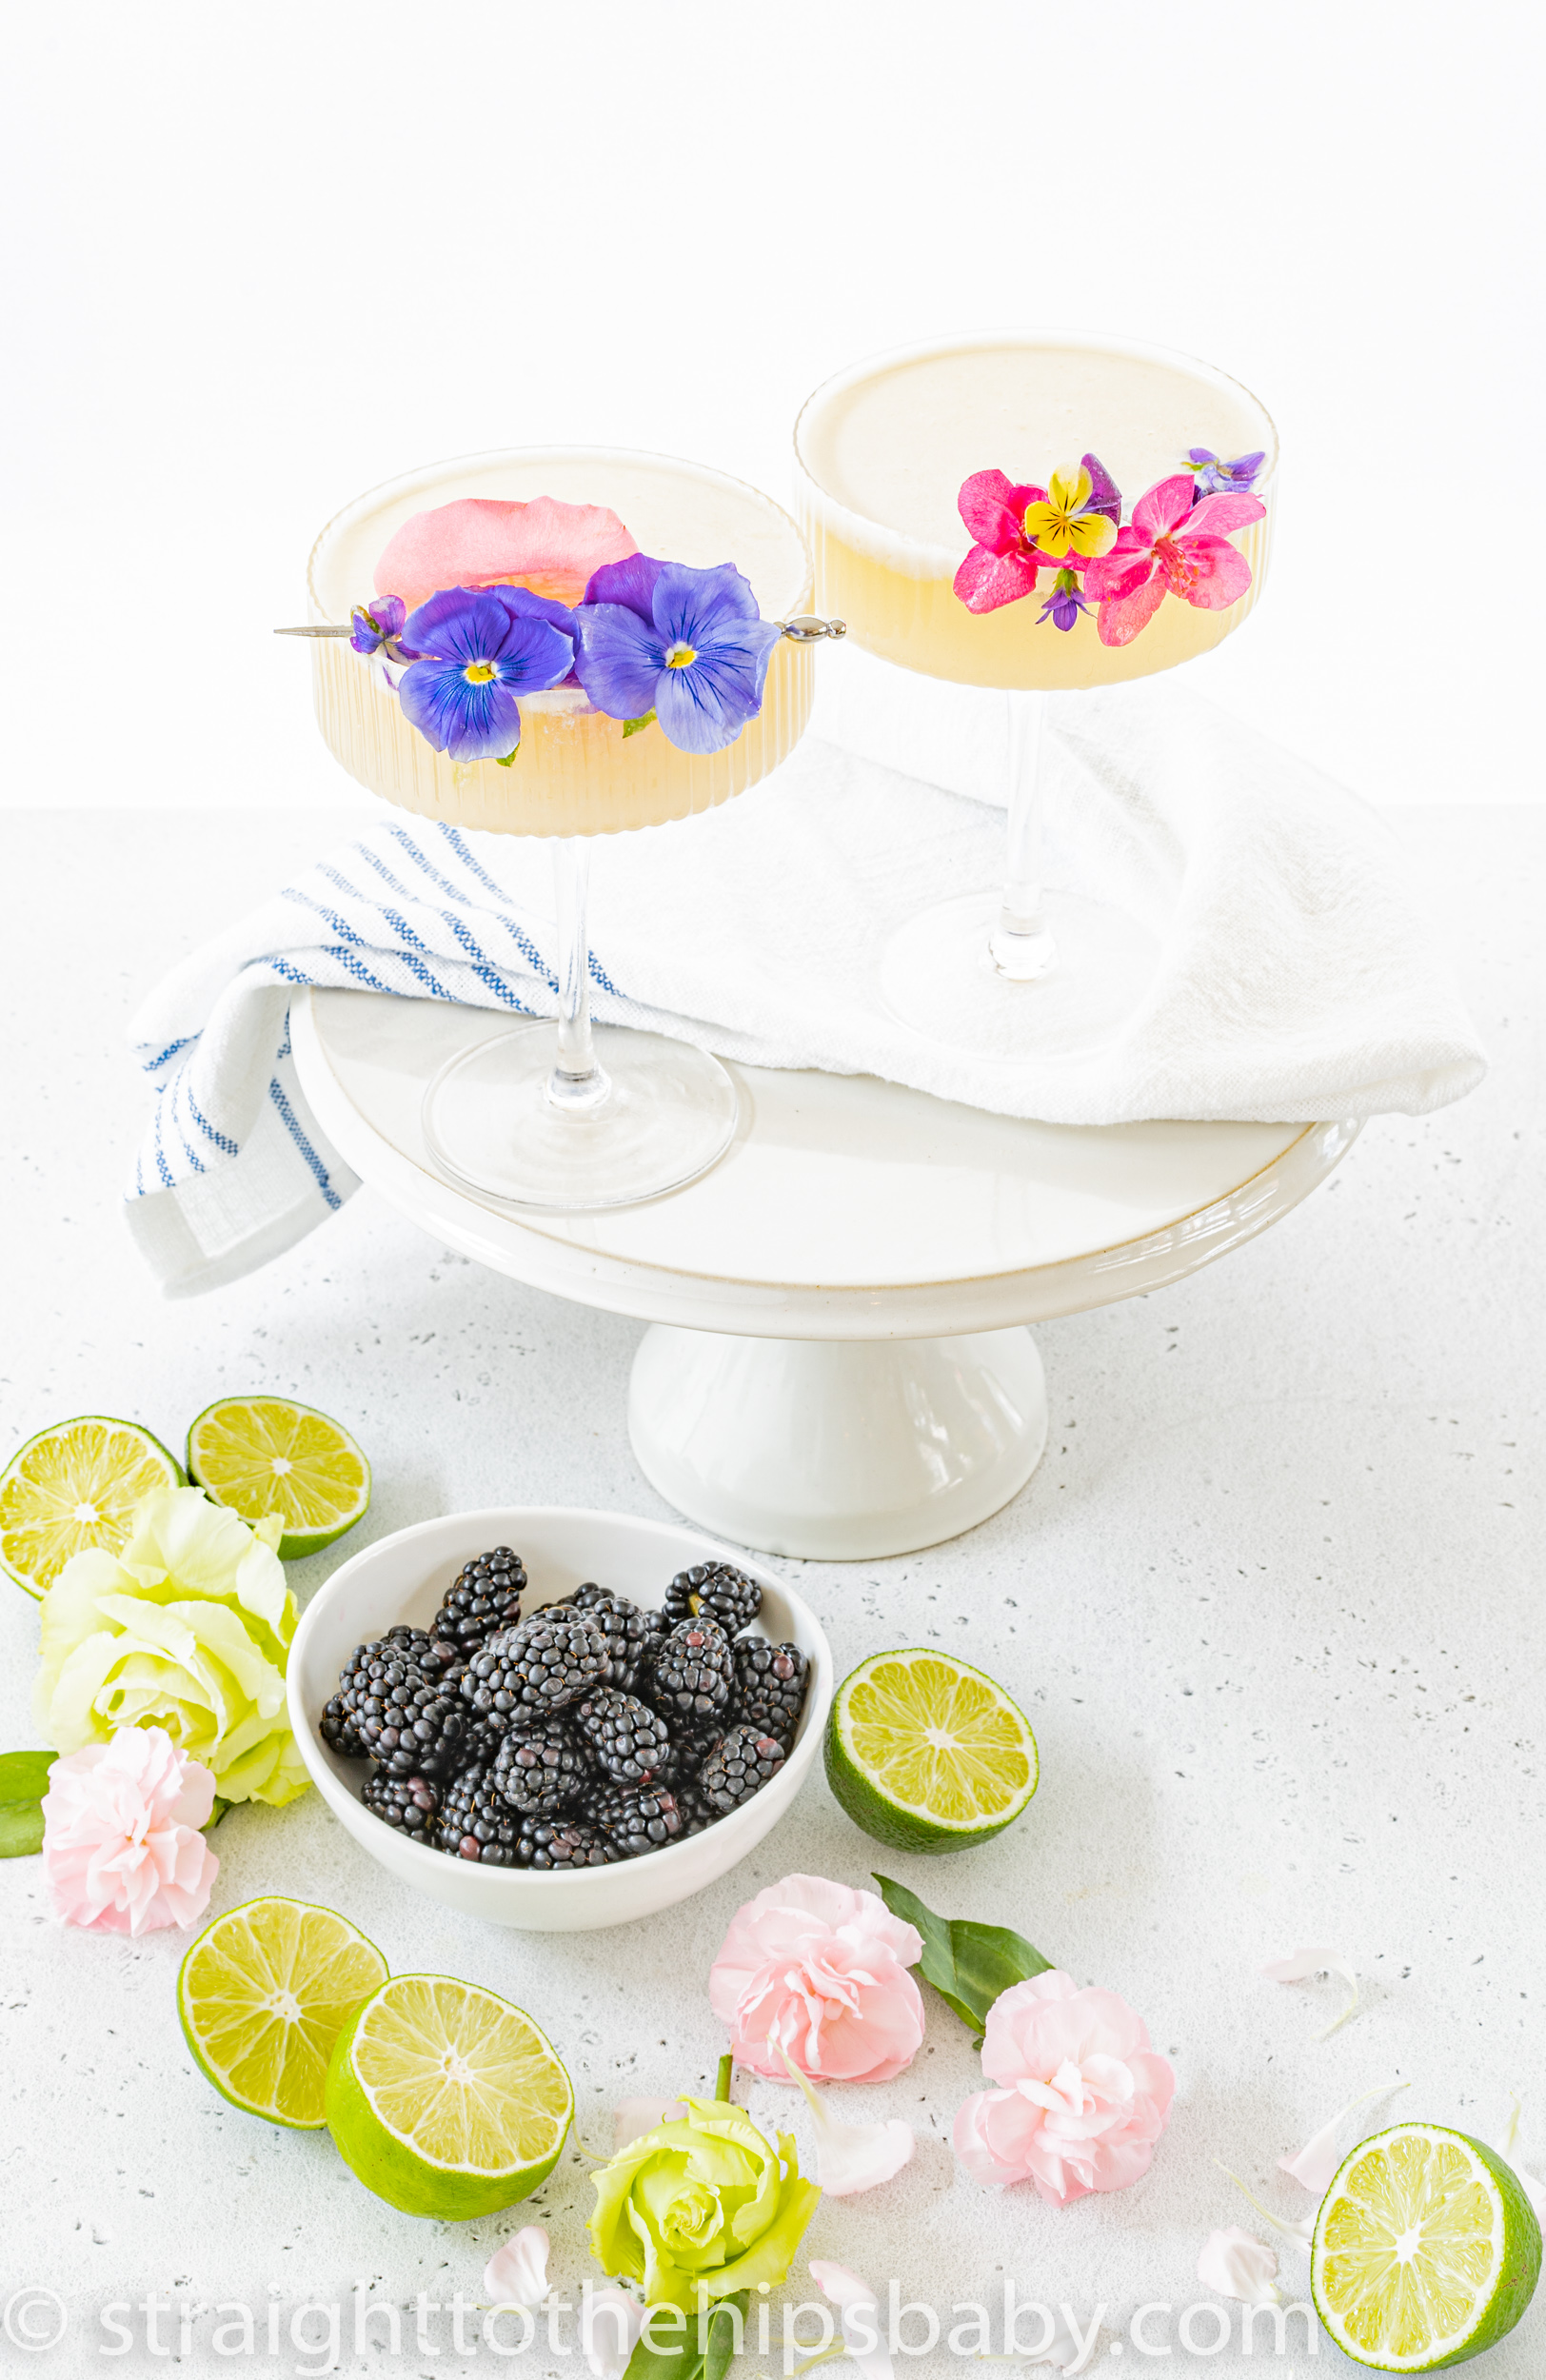 2 creamy coconut pearl Palomas on a blue and white cloth and cake stand, with limes and fresh berries